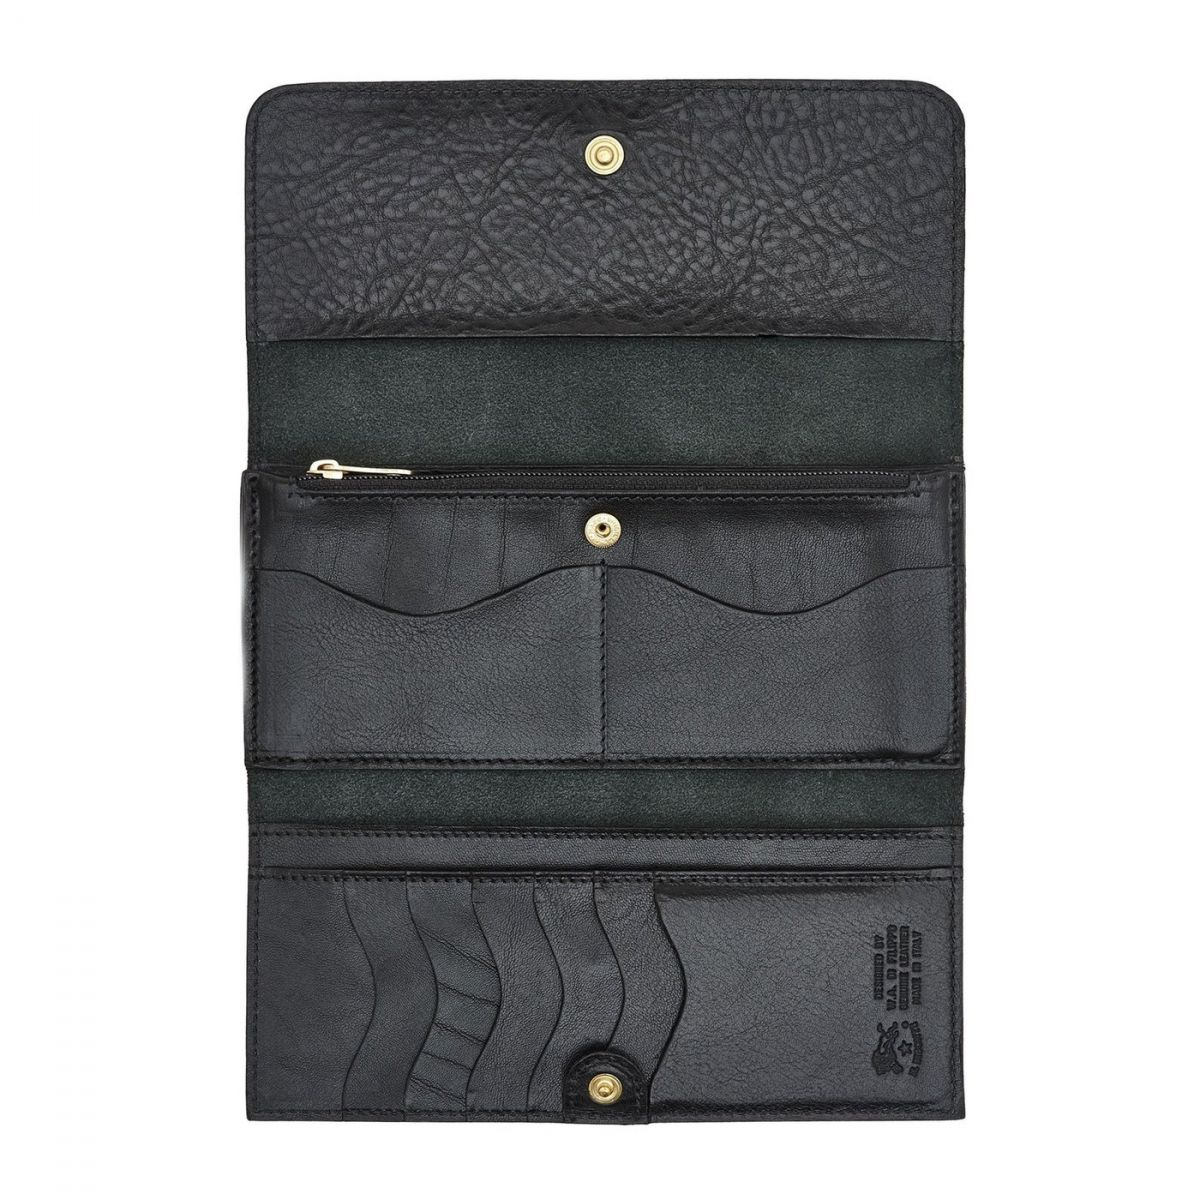 Women's Continental Wallet  in Cowhide Double Leather SCW009 color Black | Details